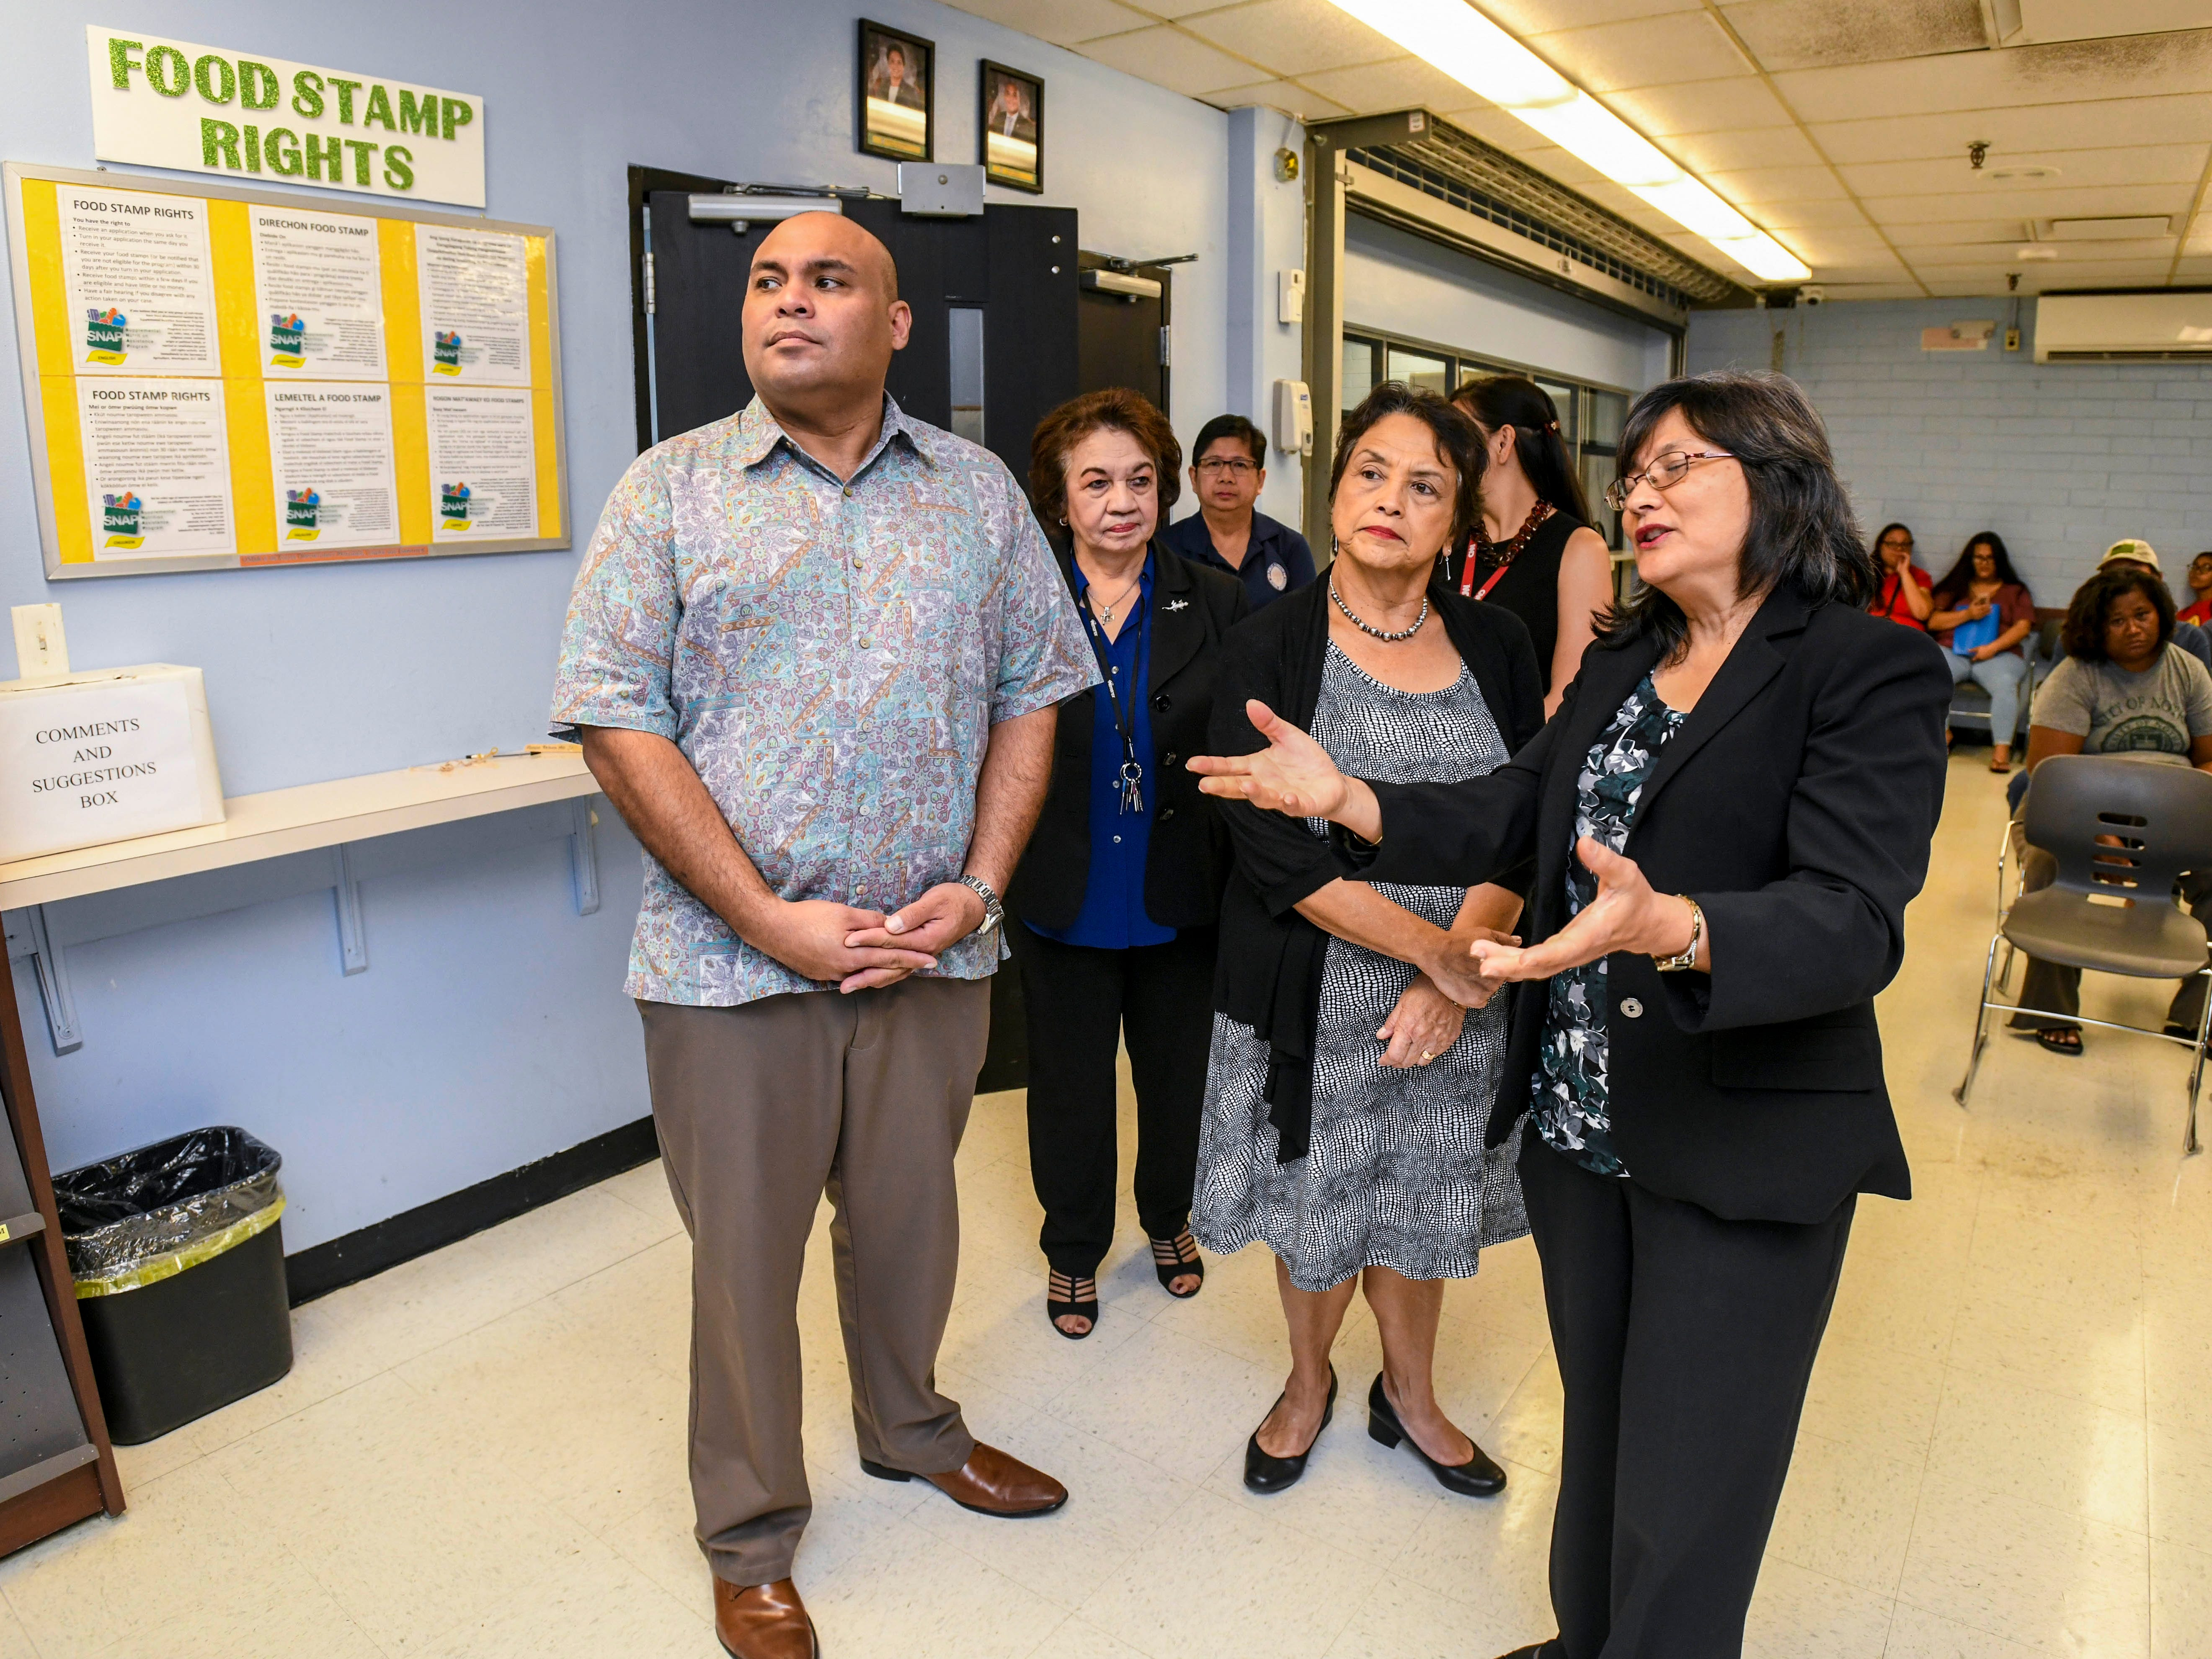 Acting Director Linda Unpingco DeNorcey, front right, explains the services provided by the Bureau of Economic Security SNAP/Public Assistance Division to Gov. Lou Leon Guerrero and Lt. Gov. Josh Tenorio during a walk-through tour of the Department of Public Health and Social Services in Mangilao on Wednesday, Feb. 13, 2019.